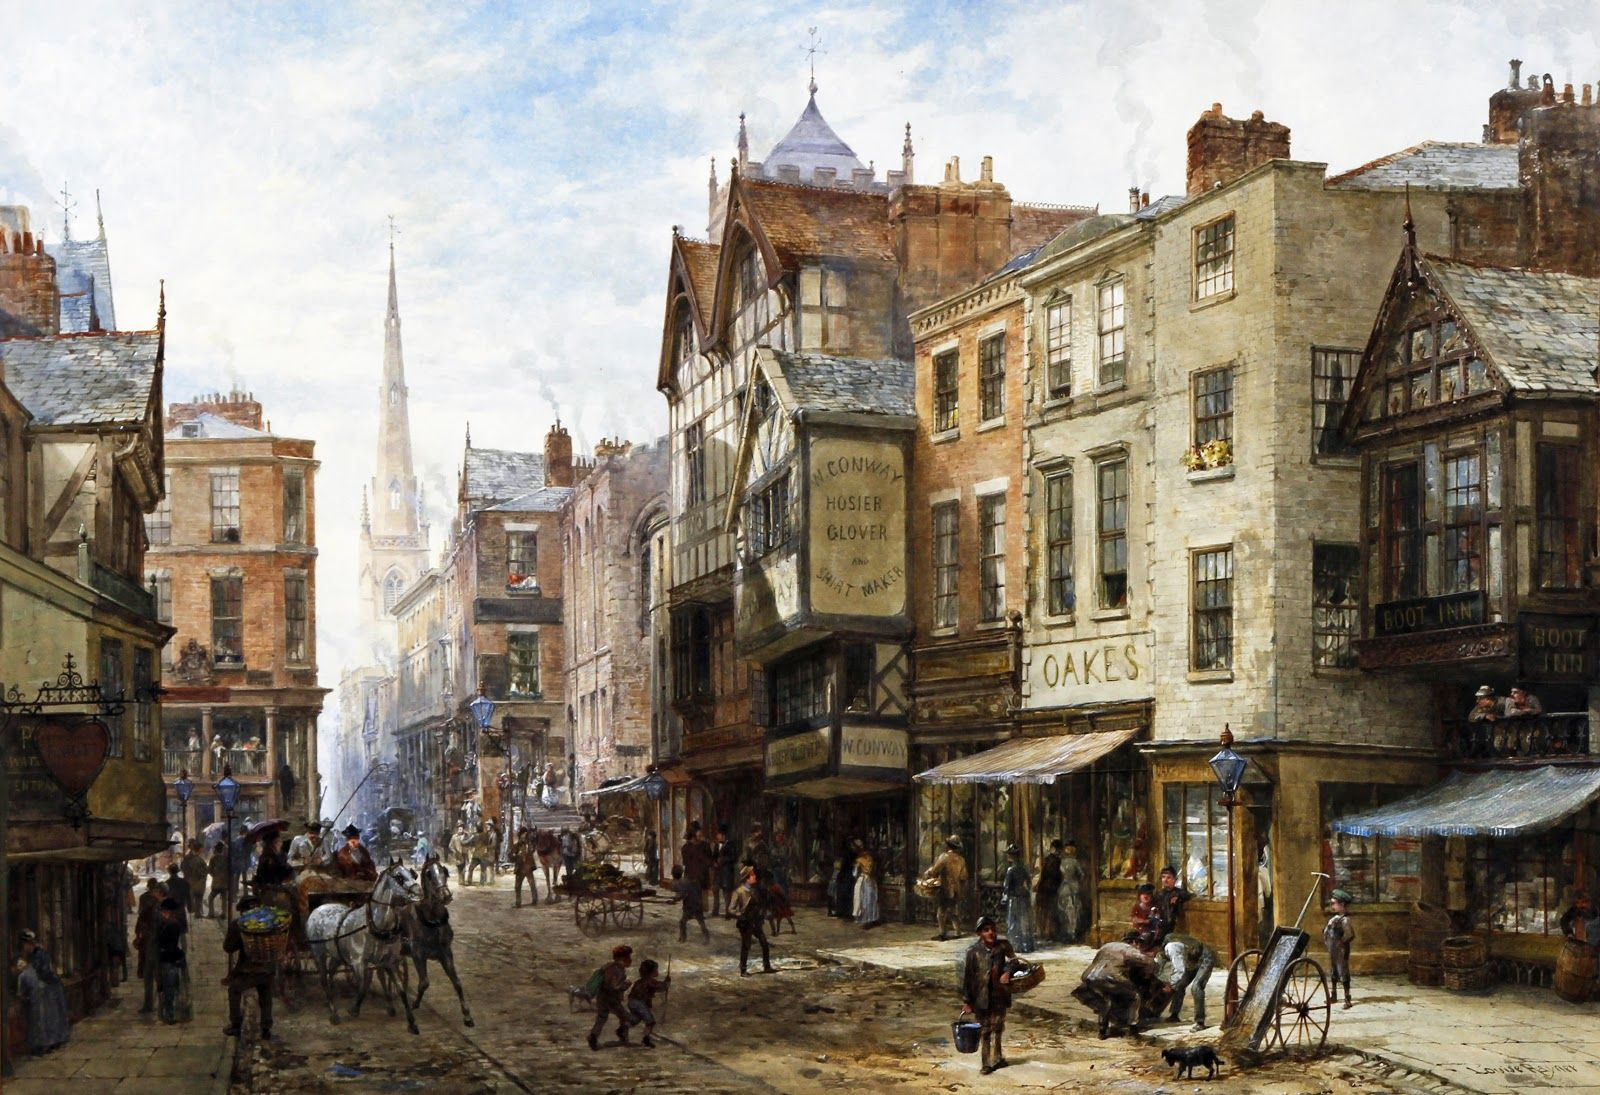 History of watercolor art - Alex Aki Art Louise Ingram Rayner June 1832 8 October Was A British Watercolor Artist She Lived In Chester In The Welsh Marches But Travelled